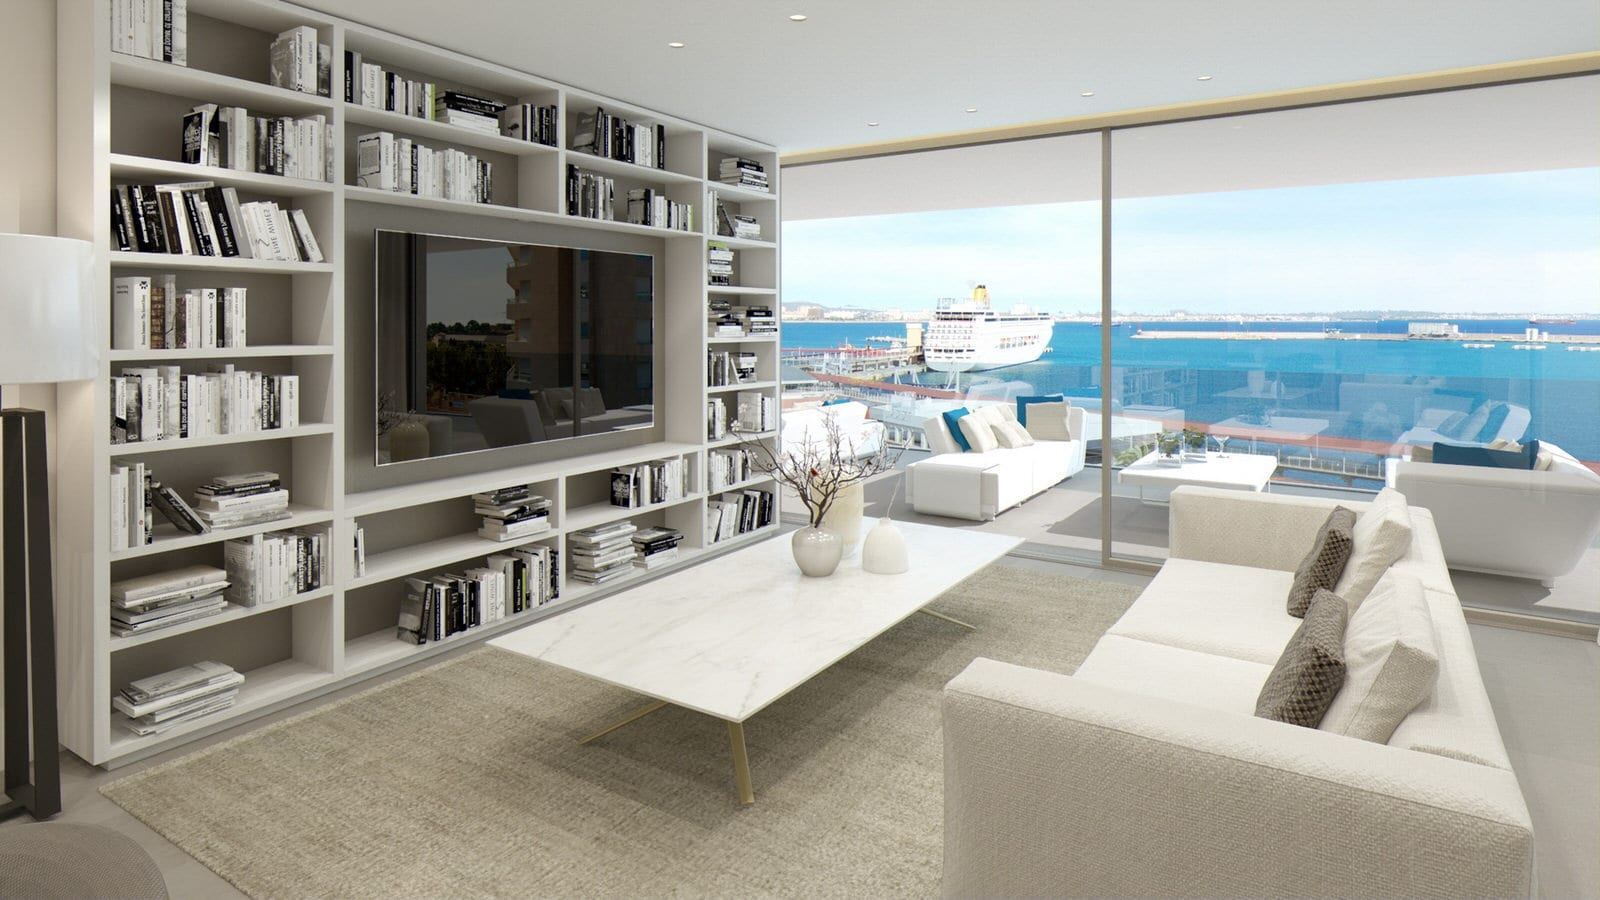 Luxus Apartment Mallorca High End Luxus Apartment Mit Wellness & Lounge Areas, In ...